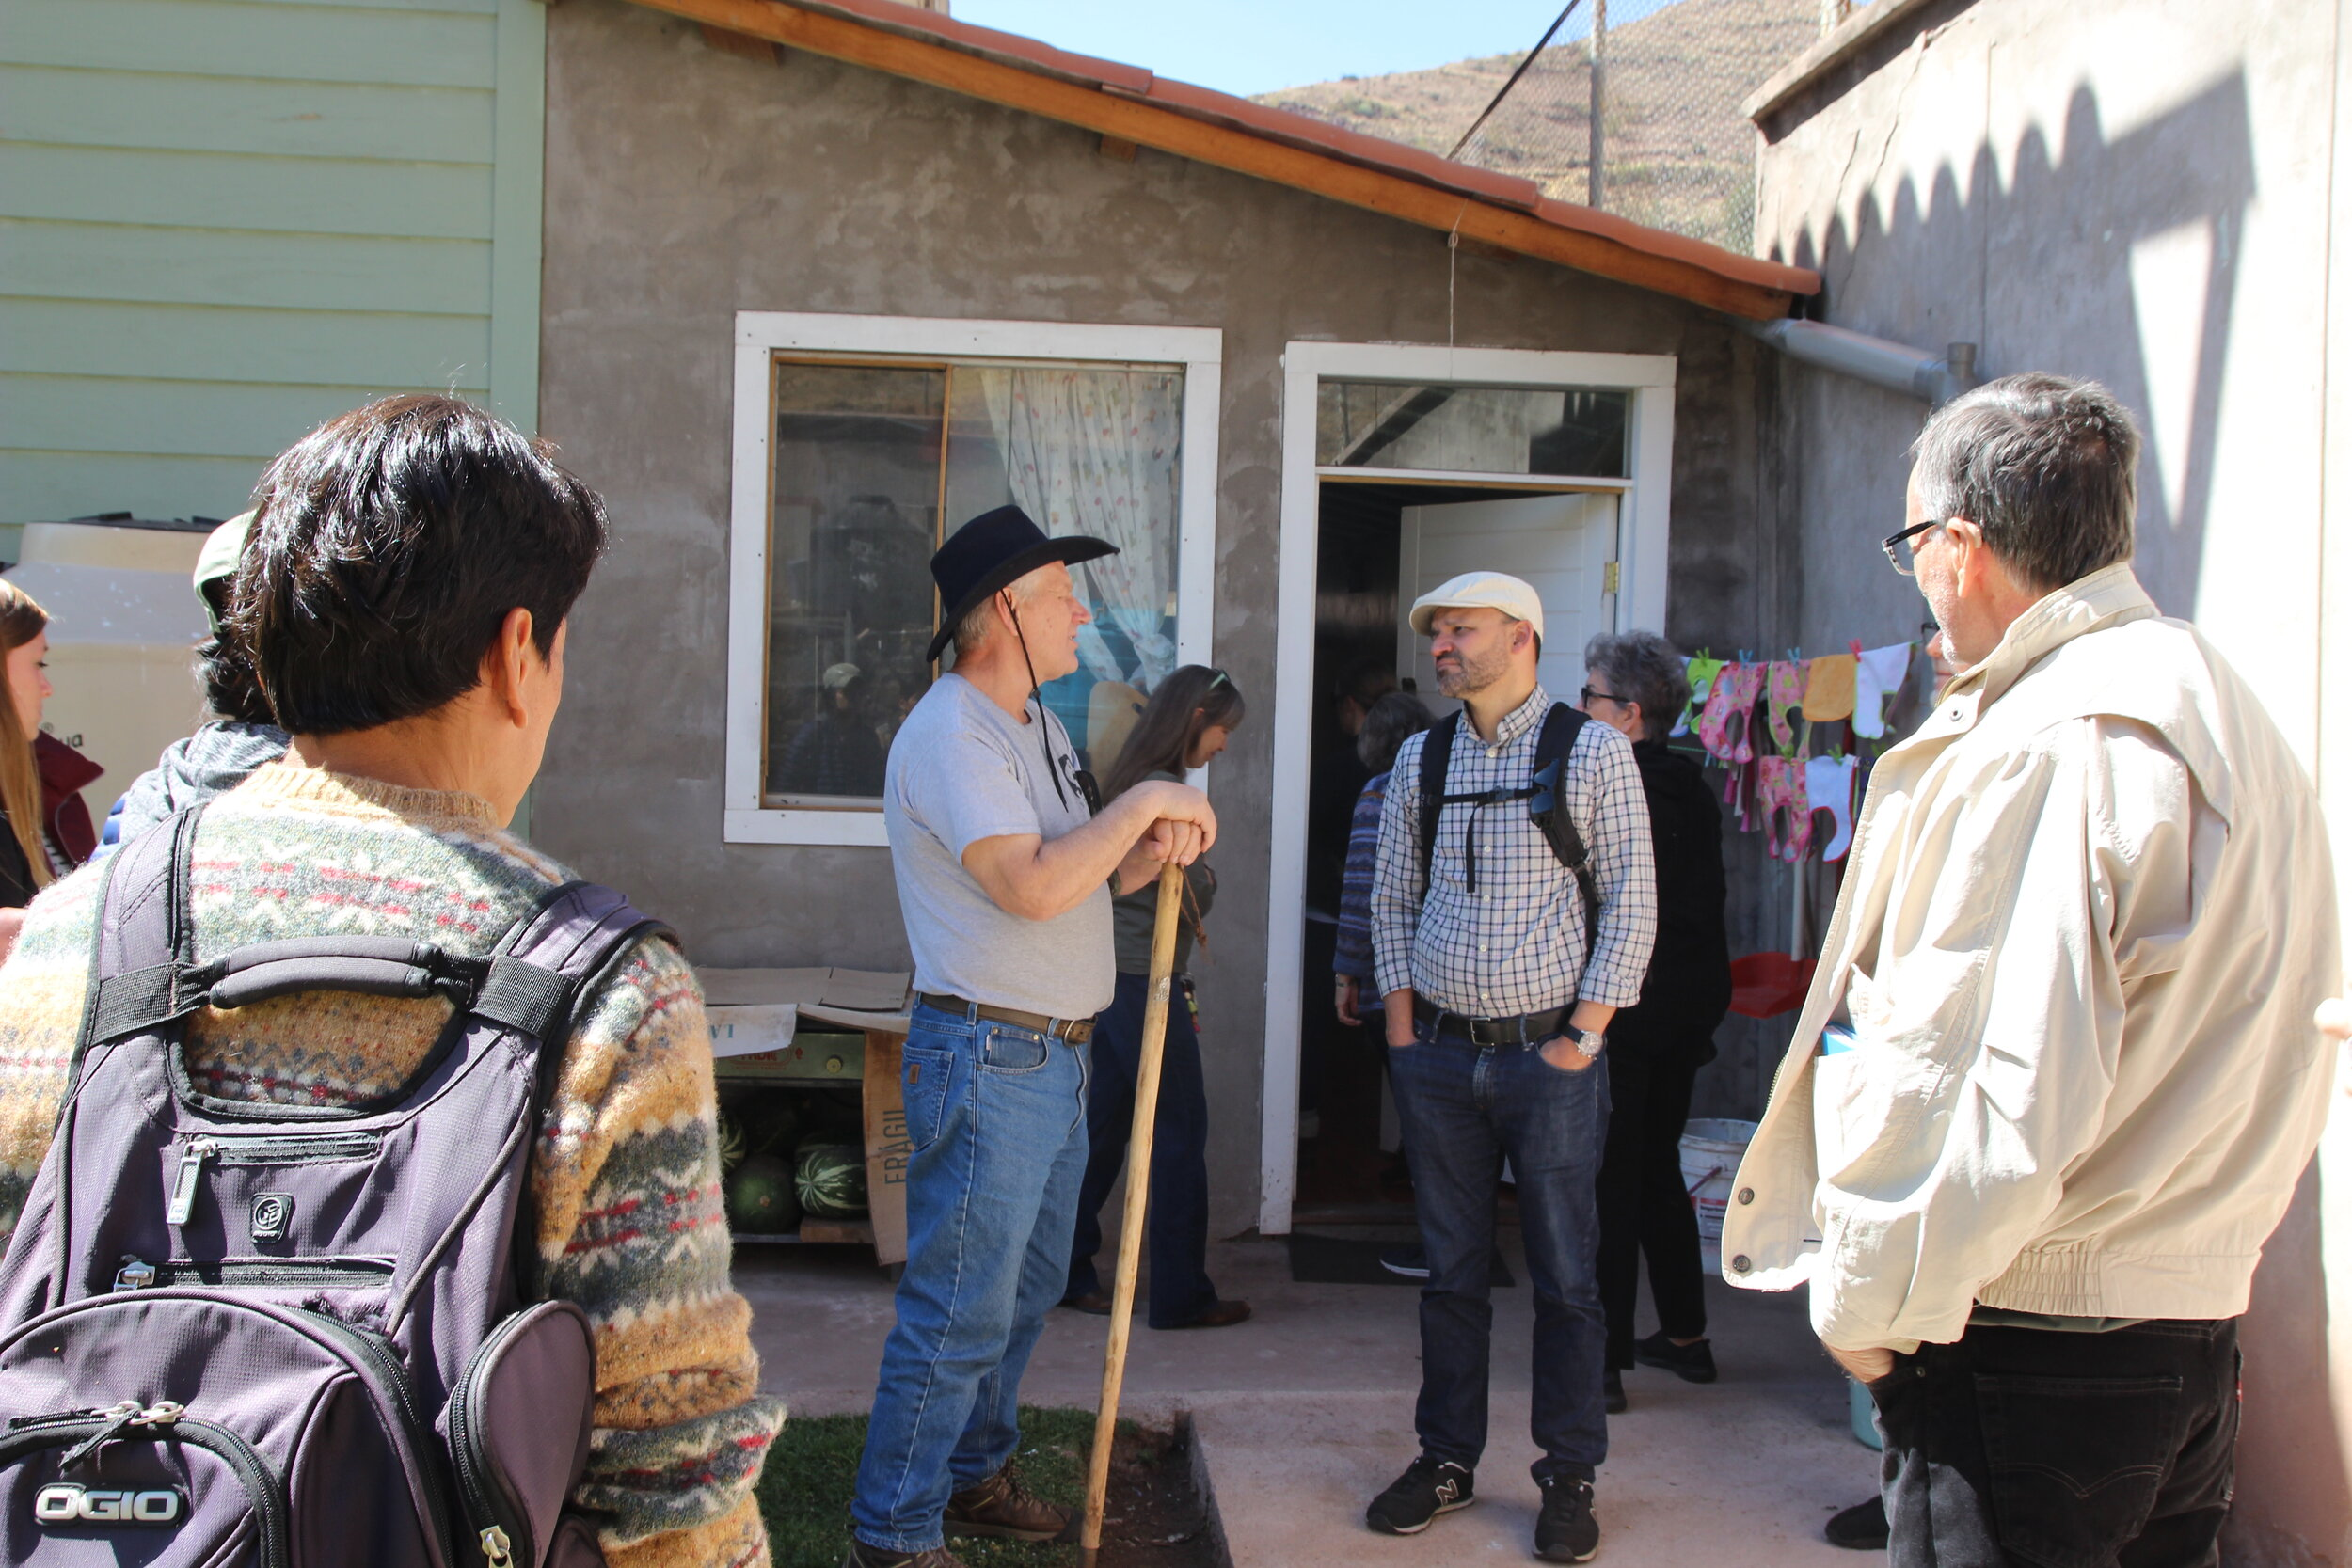 Talking with one of the missionaries about the ministry of Casa Josefina, an orphanage for infants and toddlers in Cusco.